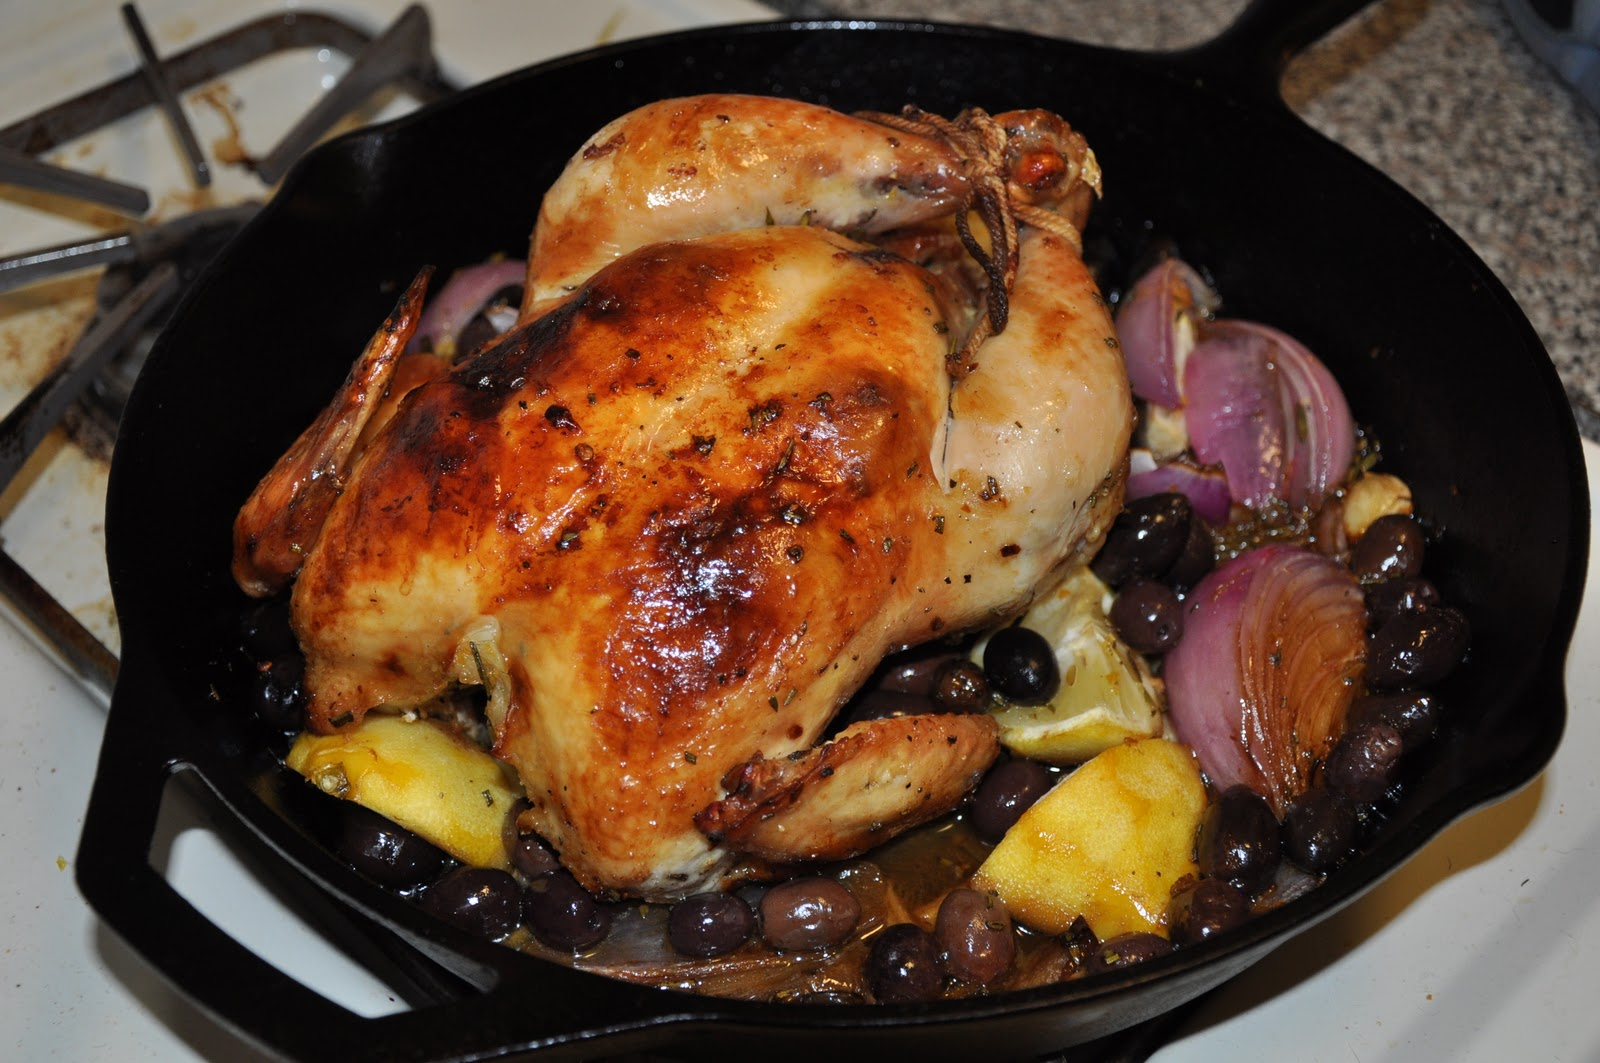 Slice of Rice: Roasted Chicken with Olives, Lemon and Garlic